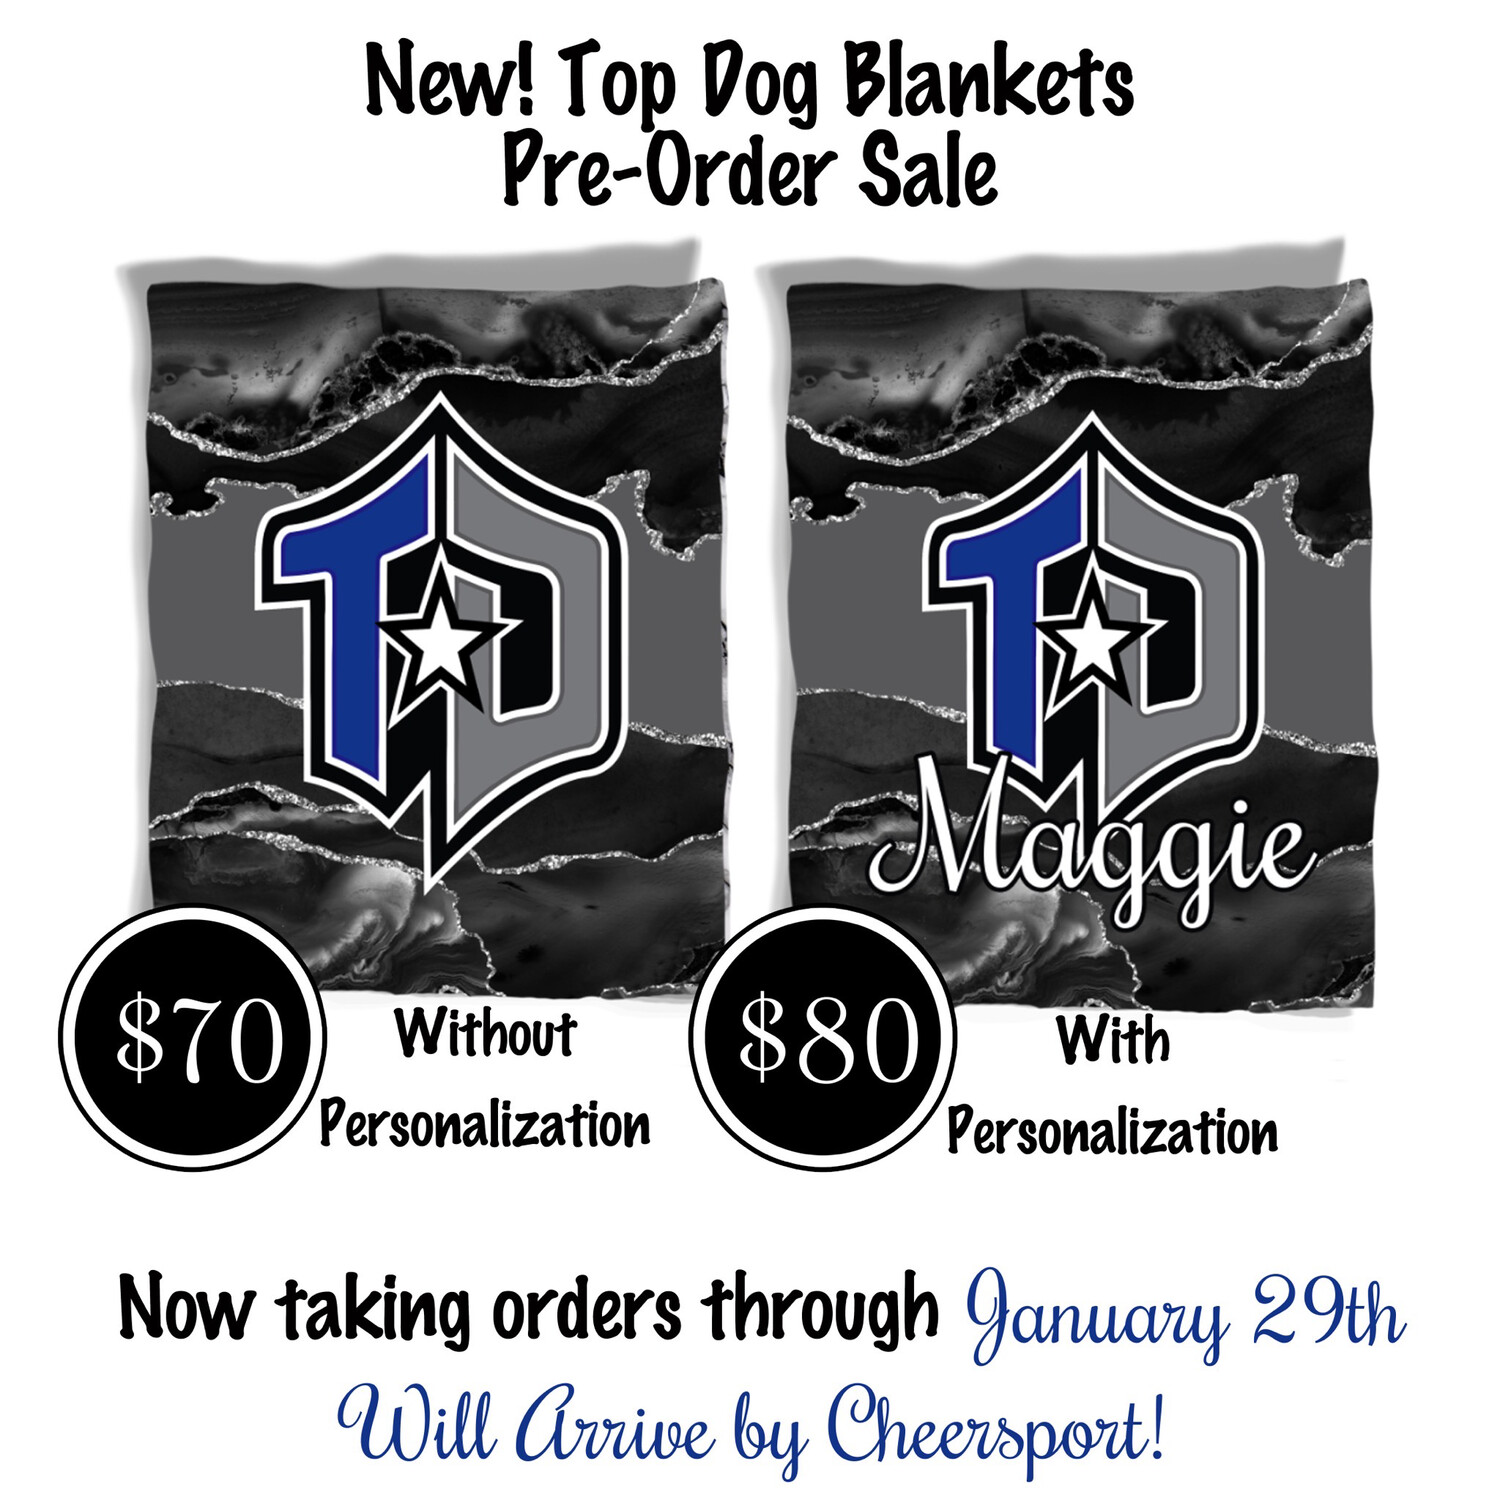 Custom Top Dog Fleece Blanket Customized with Athlete's Name.